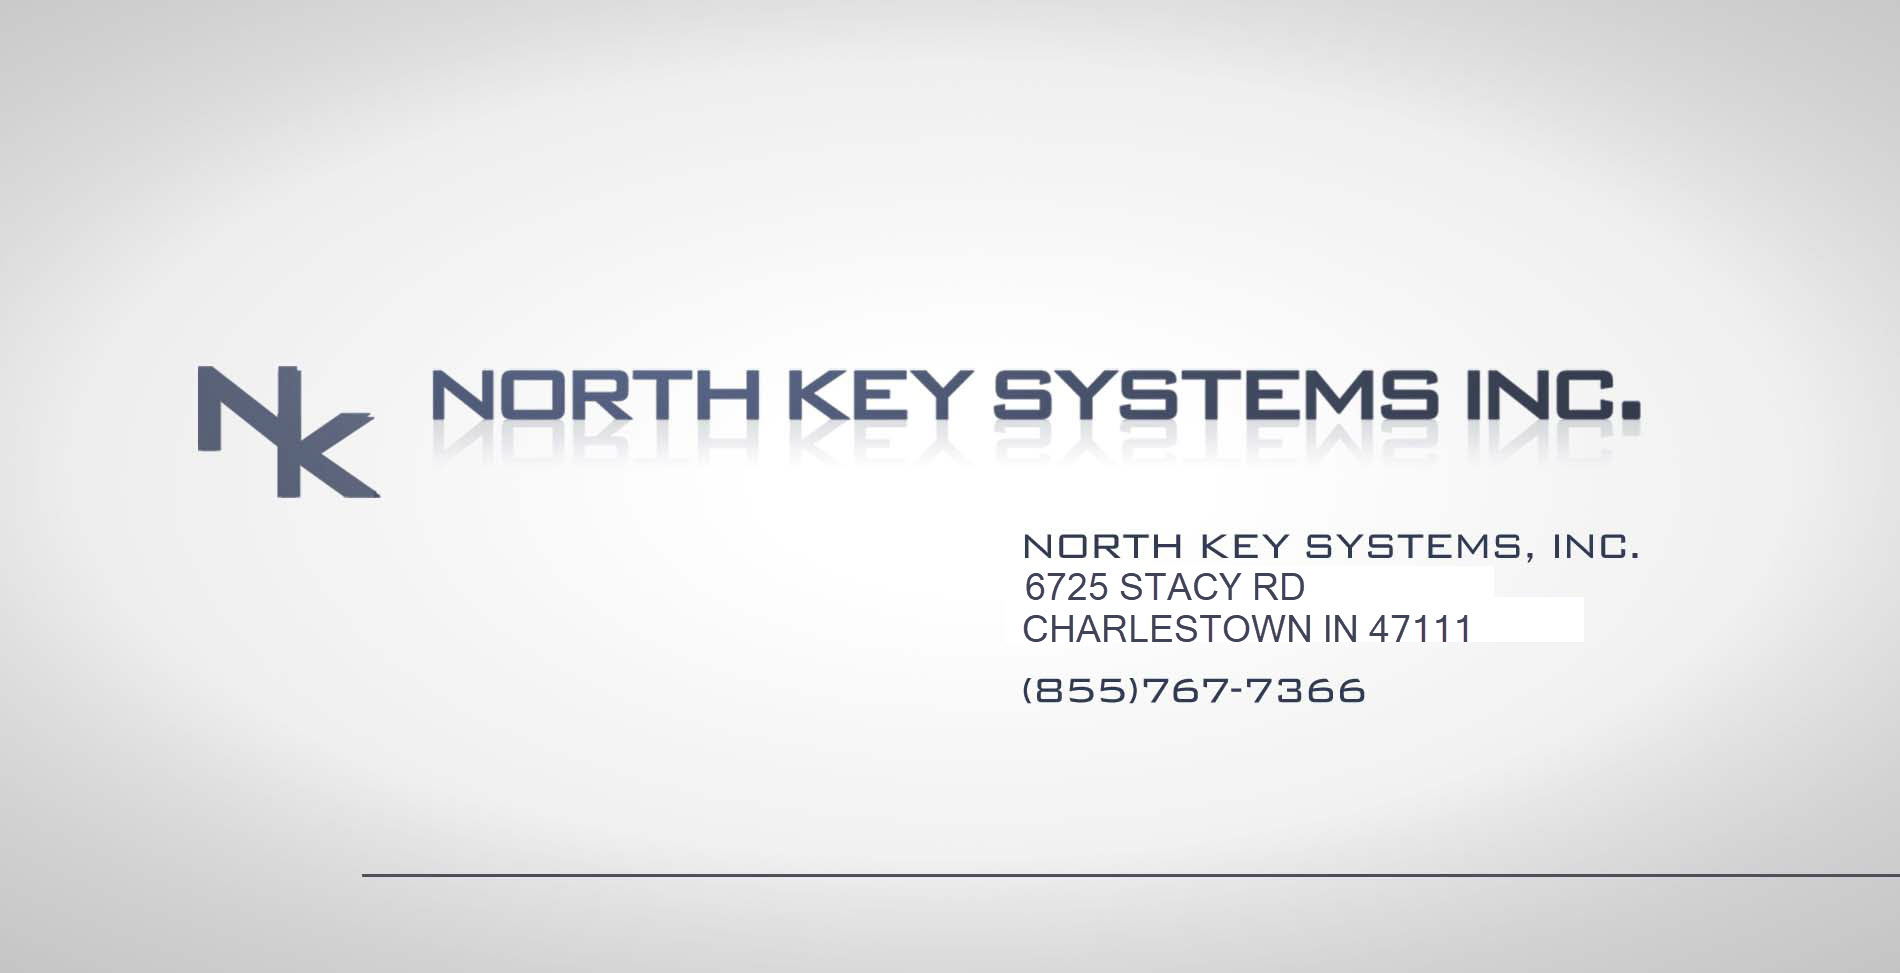 North Key Systems Inc.